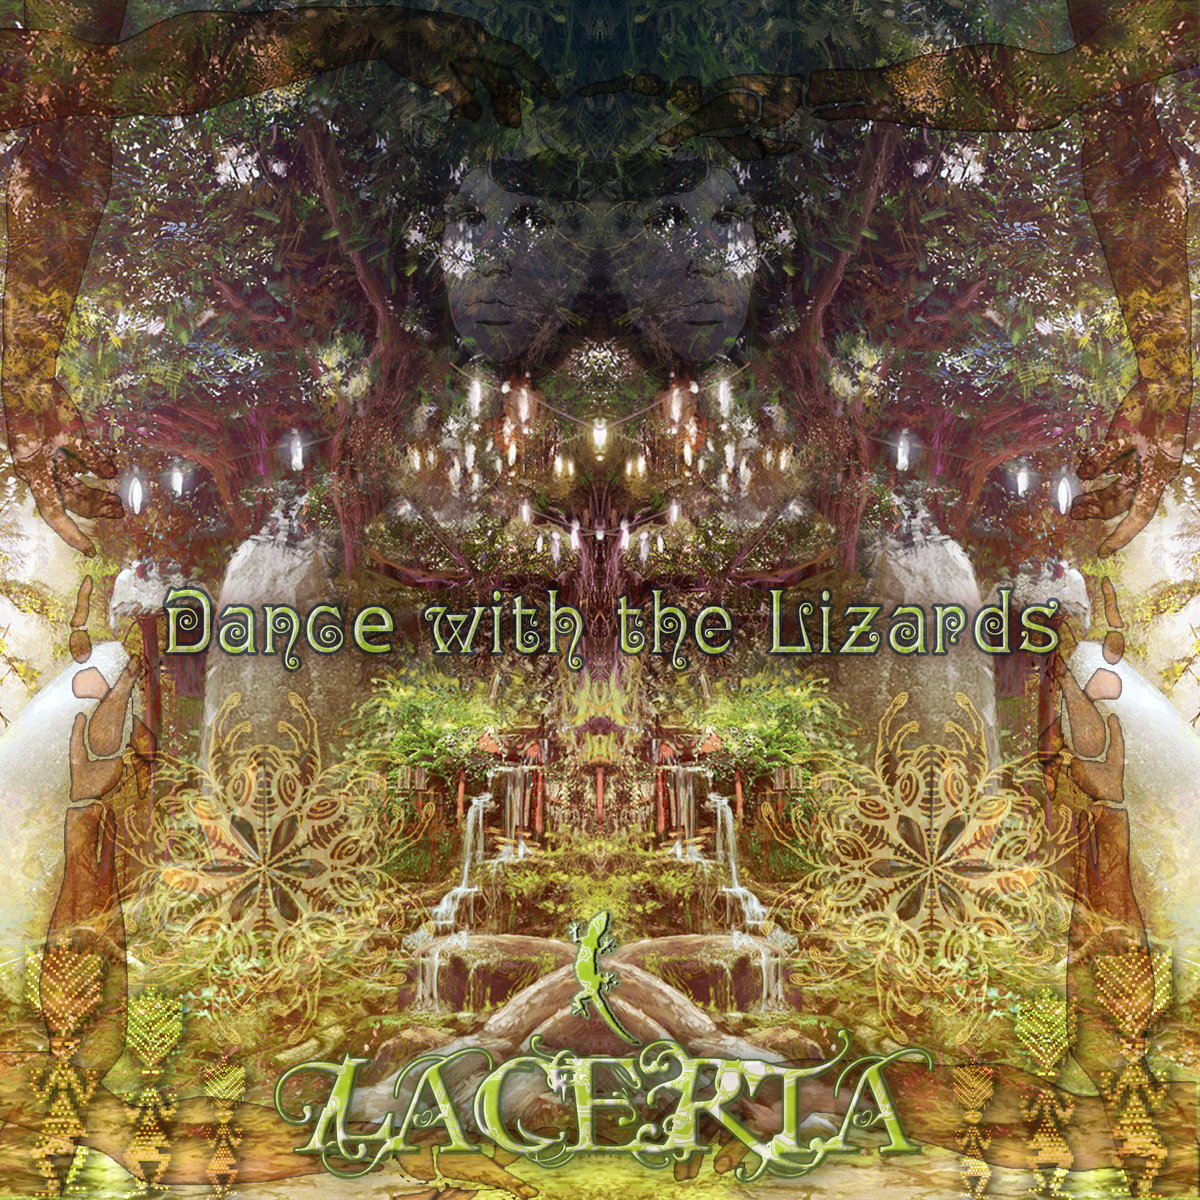 Lacerta - Goblins Piano @ 'Dance With The Lizards' album (ambient, electronic)